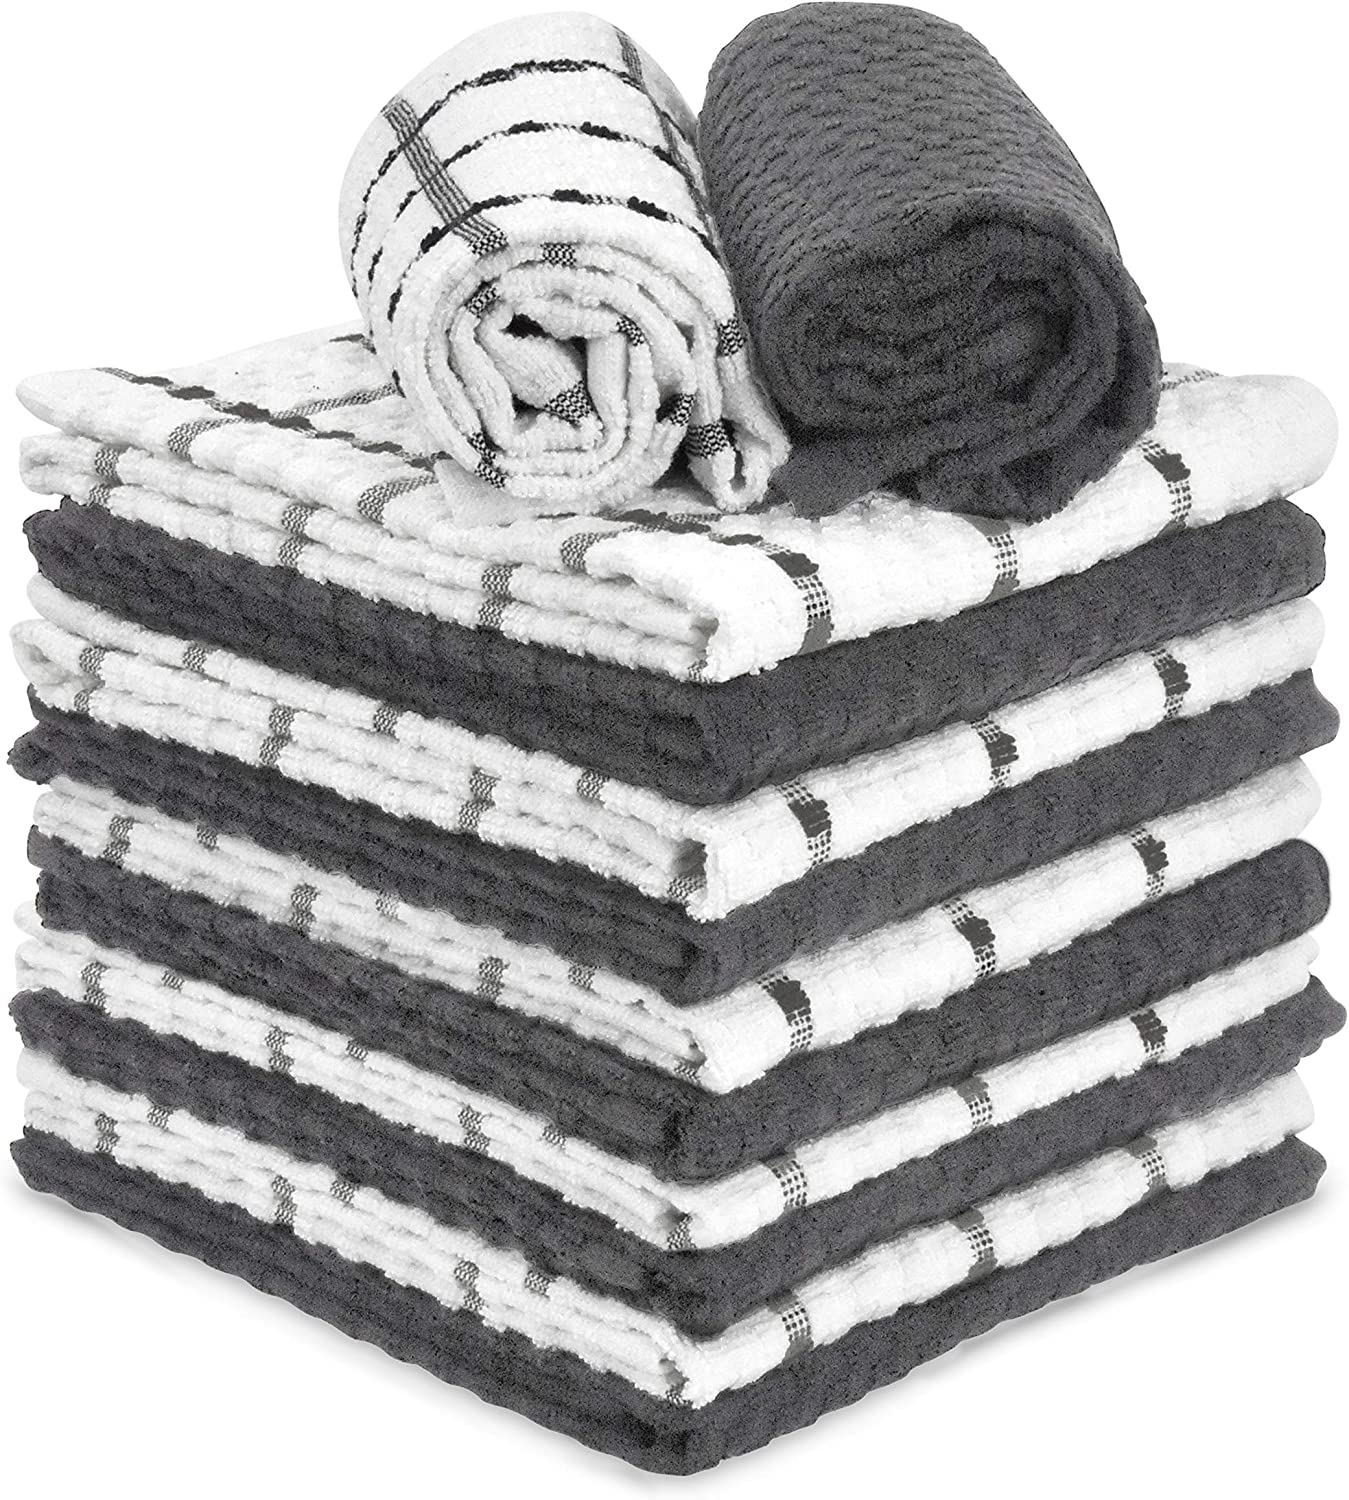 "Talvania Gray & White Kitchen Dish Towels, 100% Cotton Dobby Weave Terry Towel Set, 12 Grey Soft & Absorbent Dish Cloth for Hand and All Kitchen Cleaning 15"" X 25"" Machine Washable (Charcoal)"